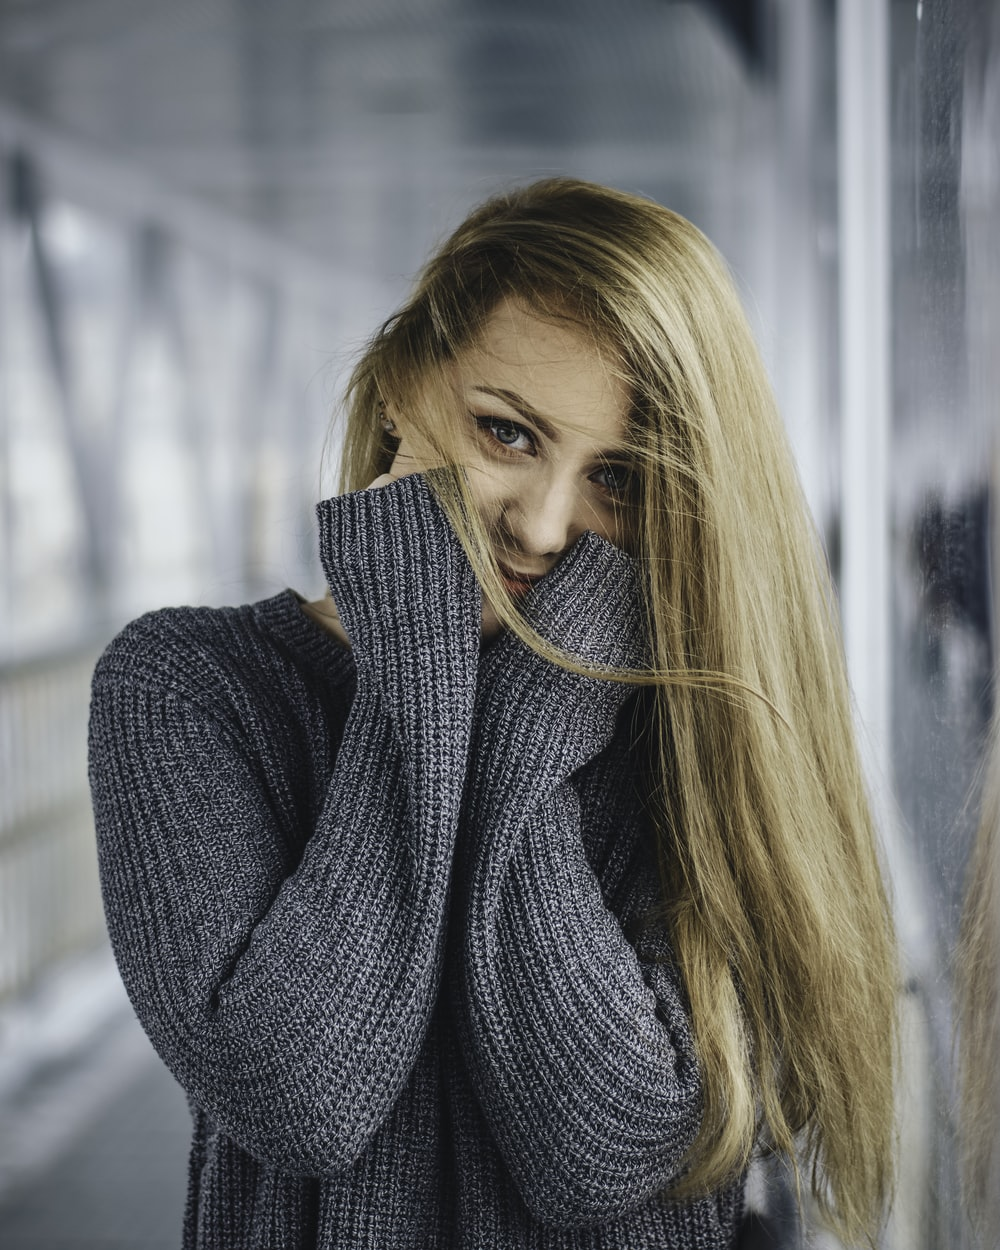 woman in gray knitted sweater with hands on cheeks